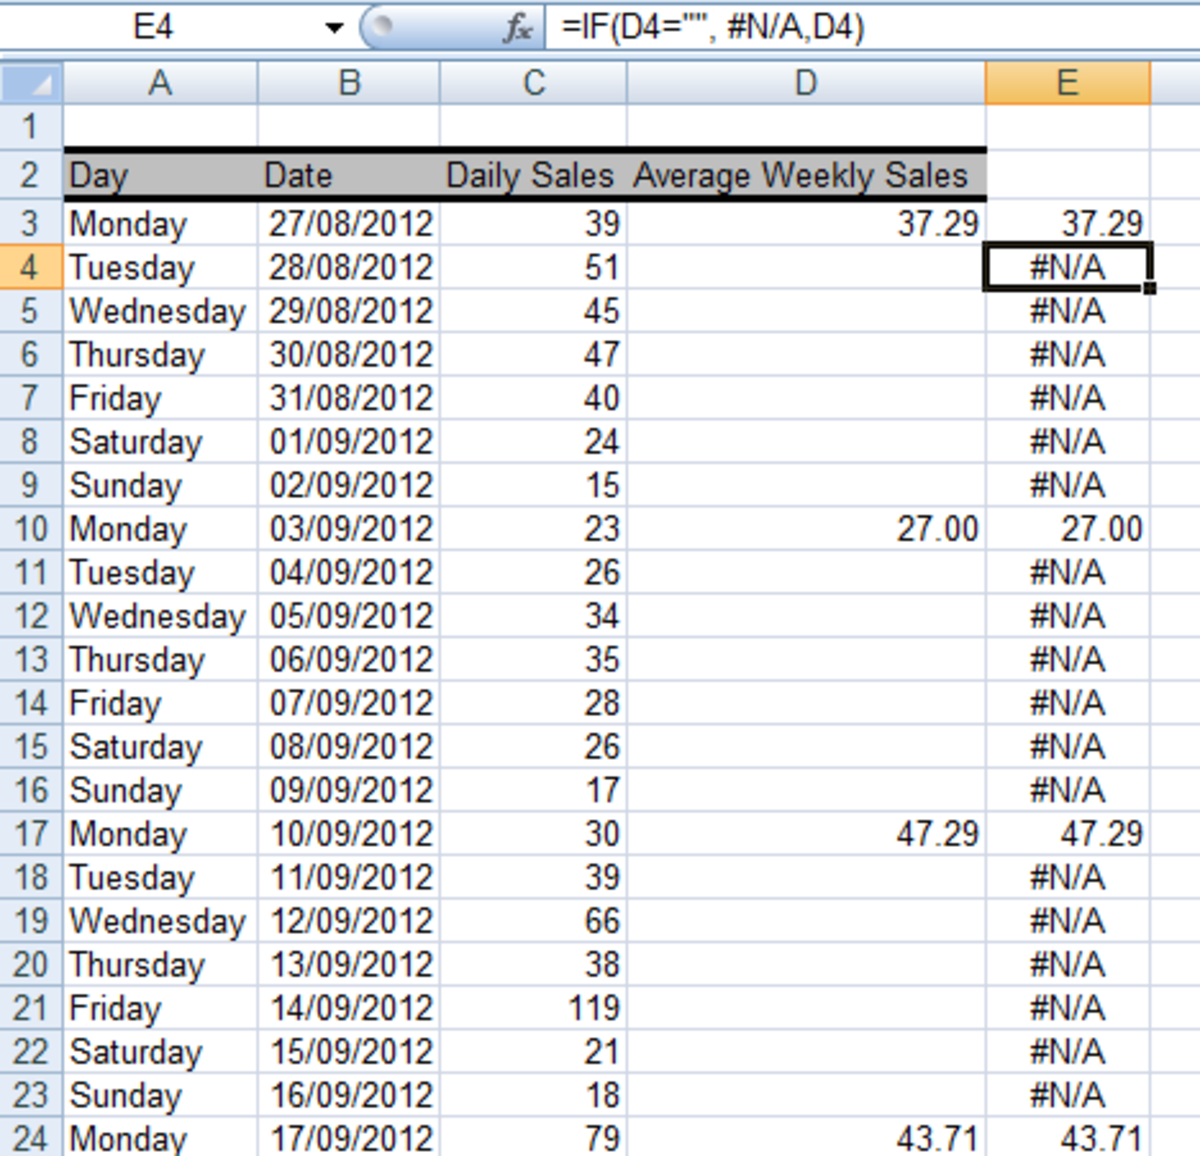 Ediblewildsus  Nice How To Get Excel  And  To Ignore Empty Cells In A Chart Or  With Licious Using The If Function In A Formula To Convert Empty Cells To Na With Nice Excel  Pivot Table Tutorial Also What Is A Form In Excel In Addition Add Title To Excel Graph And Using Excel To Calculate Percentage As Well As Excel Change Color Based On Value Additionally If Statement In Excel Vba From Turbofuturecom With Ediblewildsus  Licious How To Get Excel  And  To Ignore Empty Cells In A Chart Or  With Nice Using The If Function In A Formula To Convert Empty Cells To Na And Nice Excel  Pivot Table Tutorial Also What Is A Form In Excel In Addition Add Title To Excel Graph From Turbofuturecom